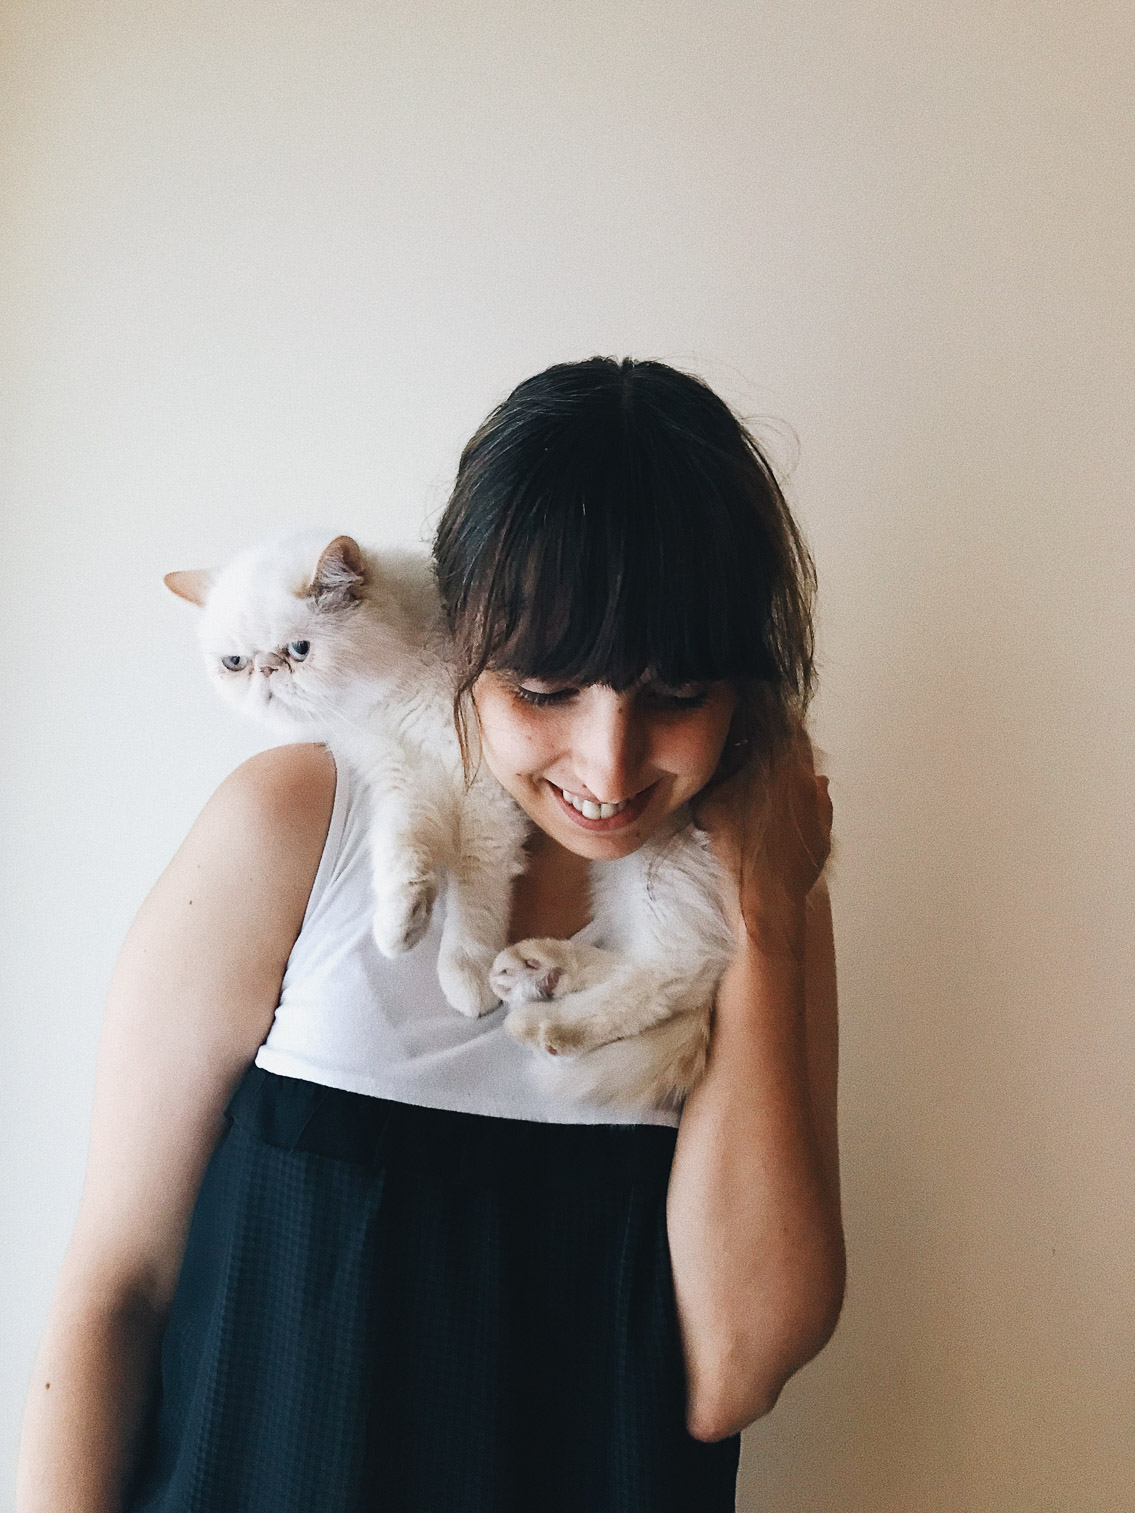 Juno and Damaris - The cat, you and us